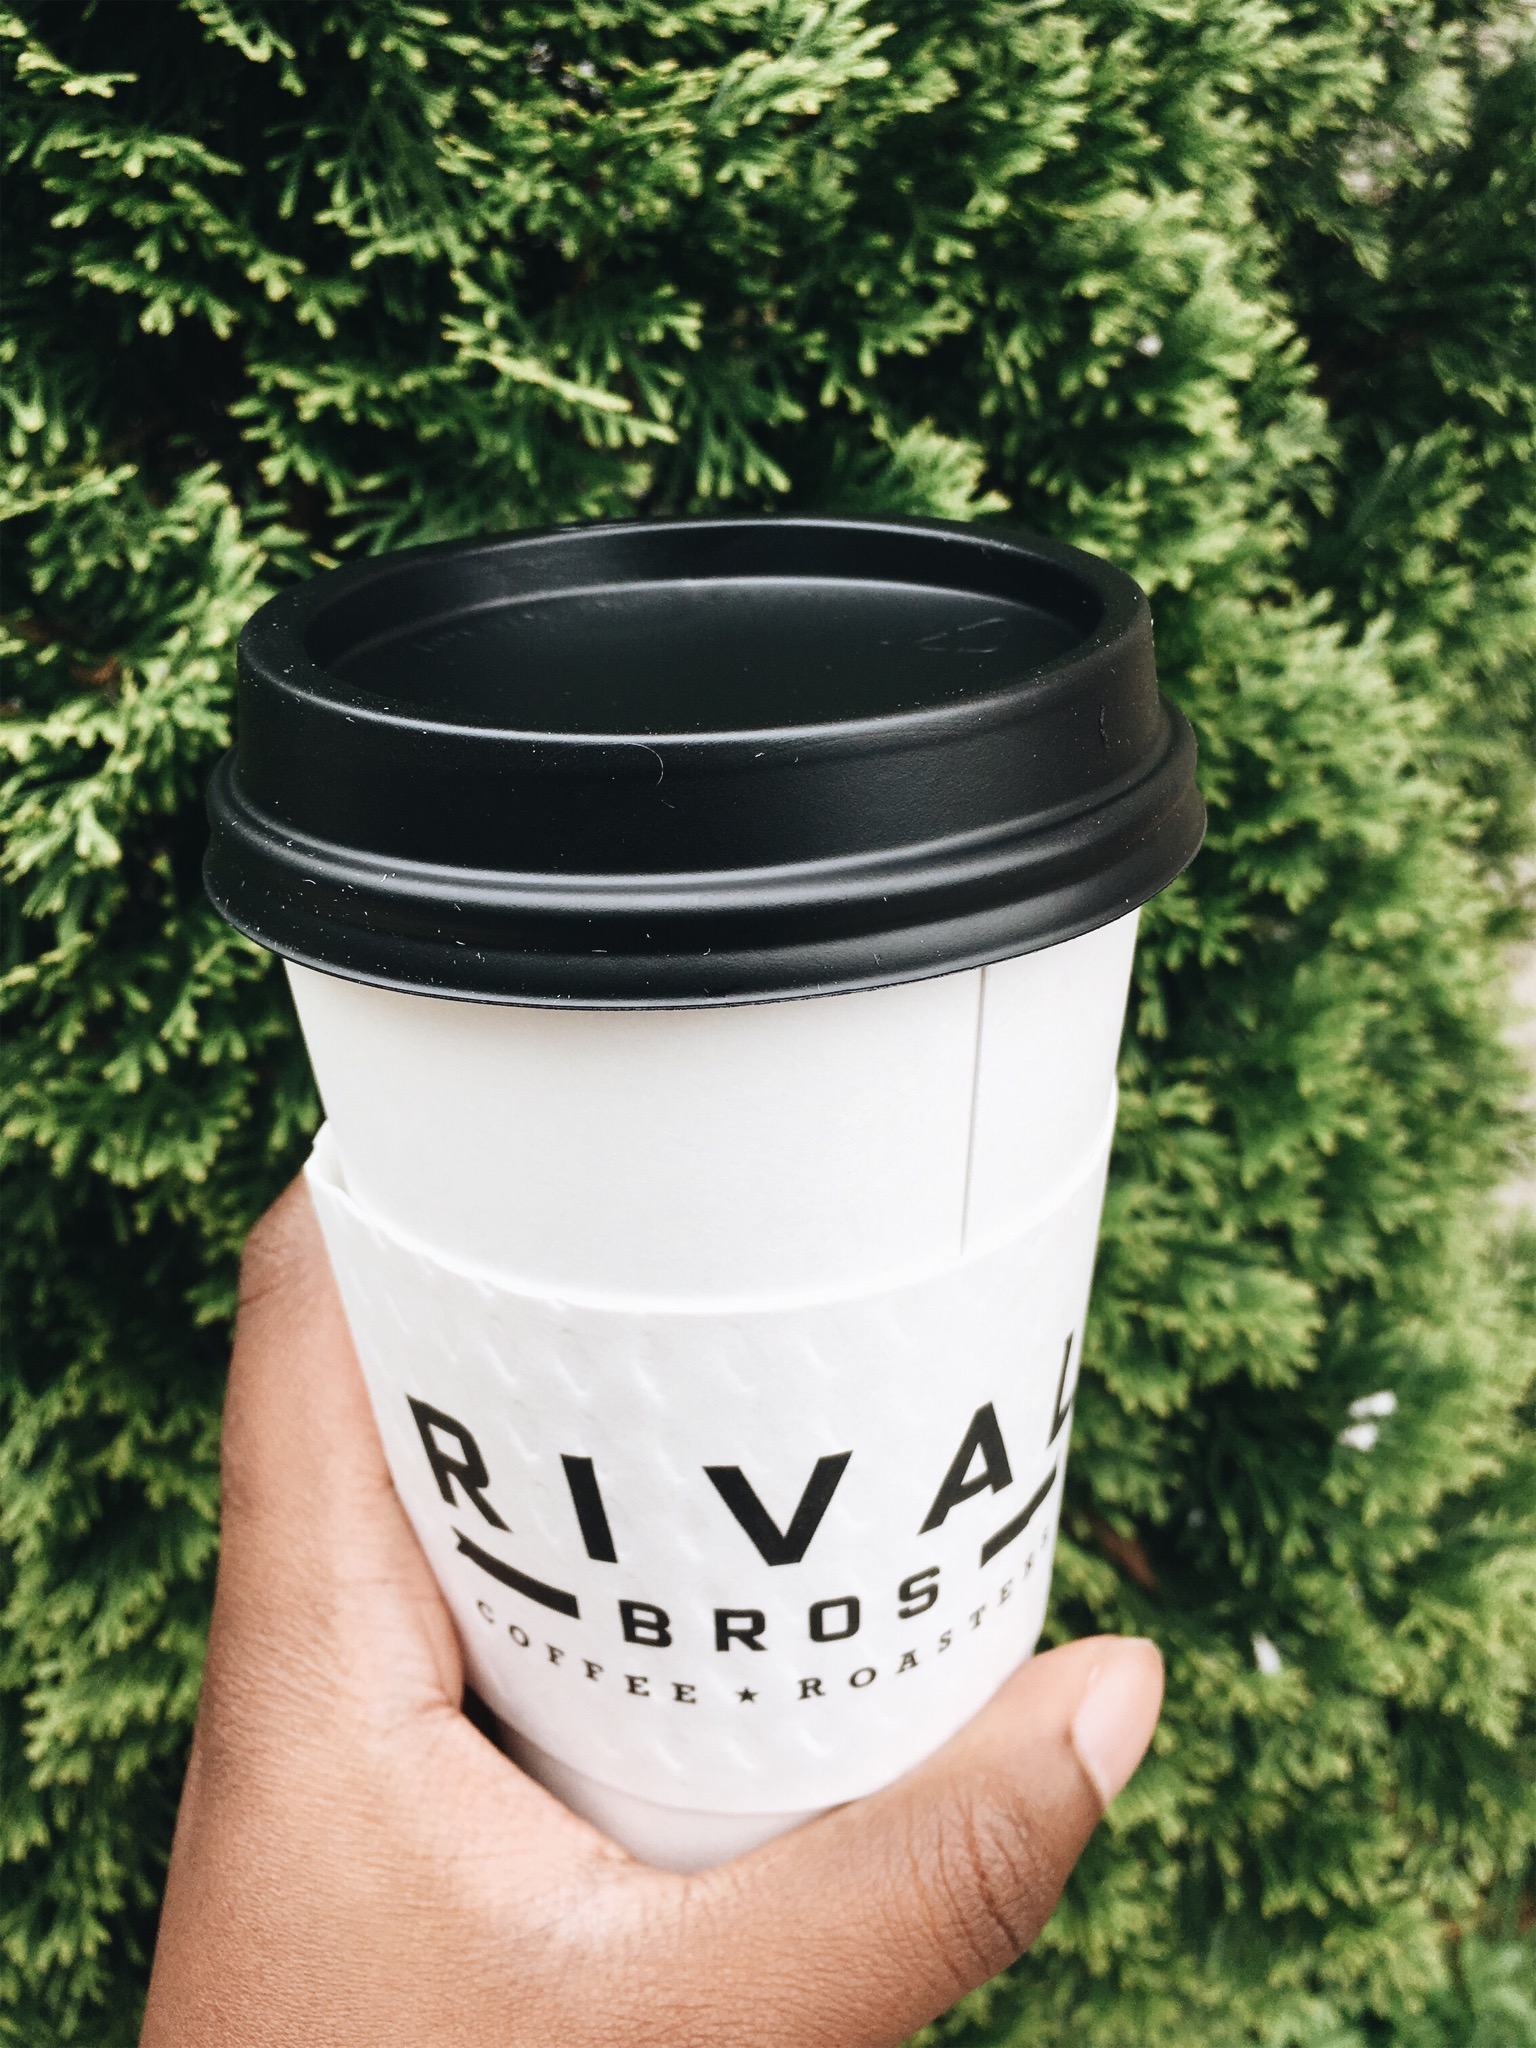 Our Favorite Local Coffee Shops in Philadelphia, PA